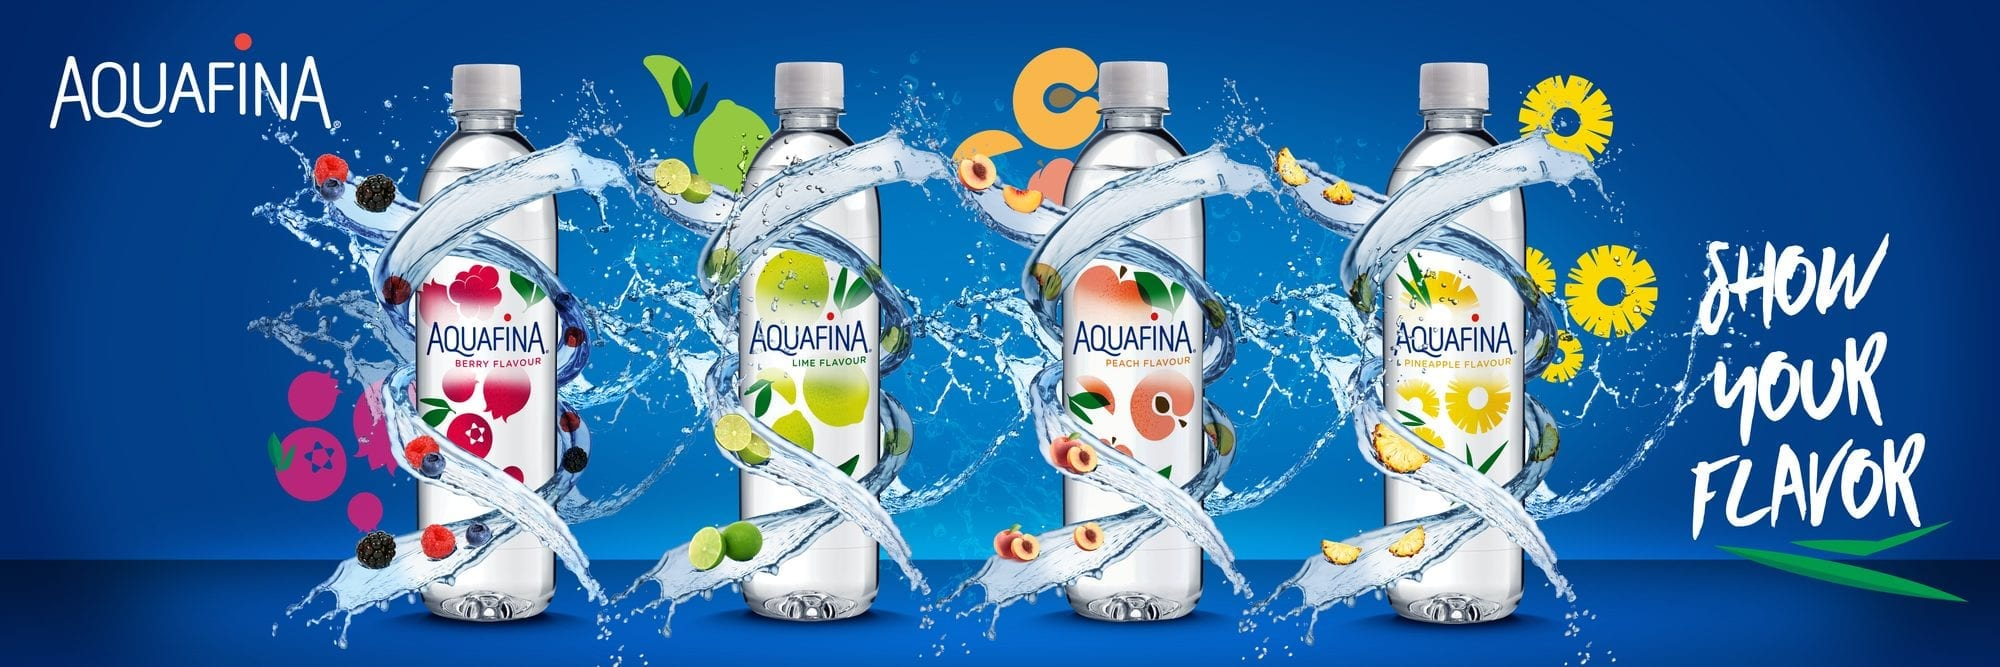 Aquafina All range_2k